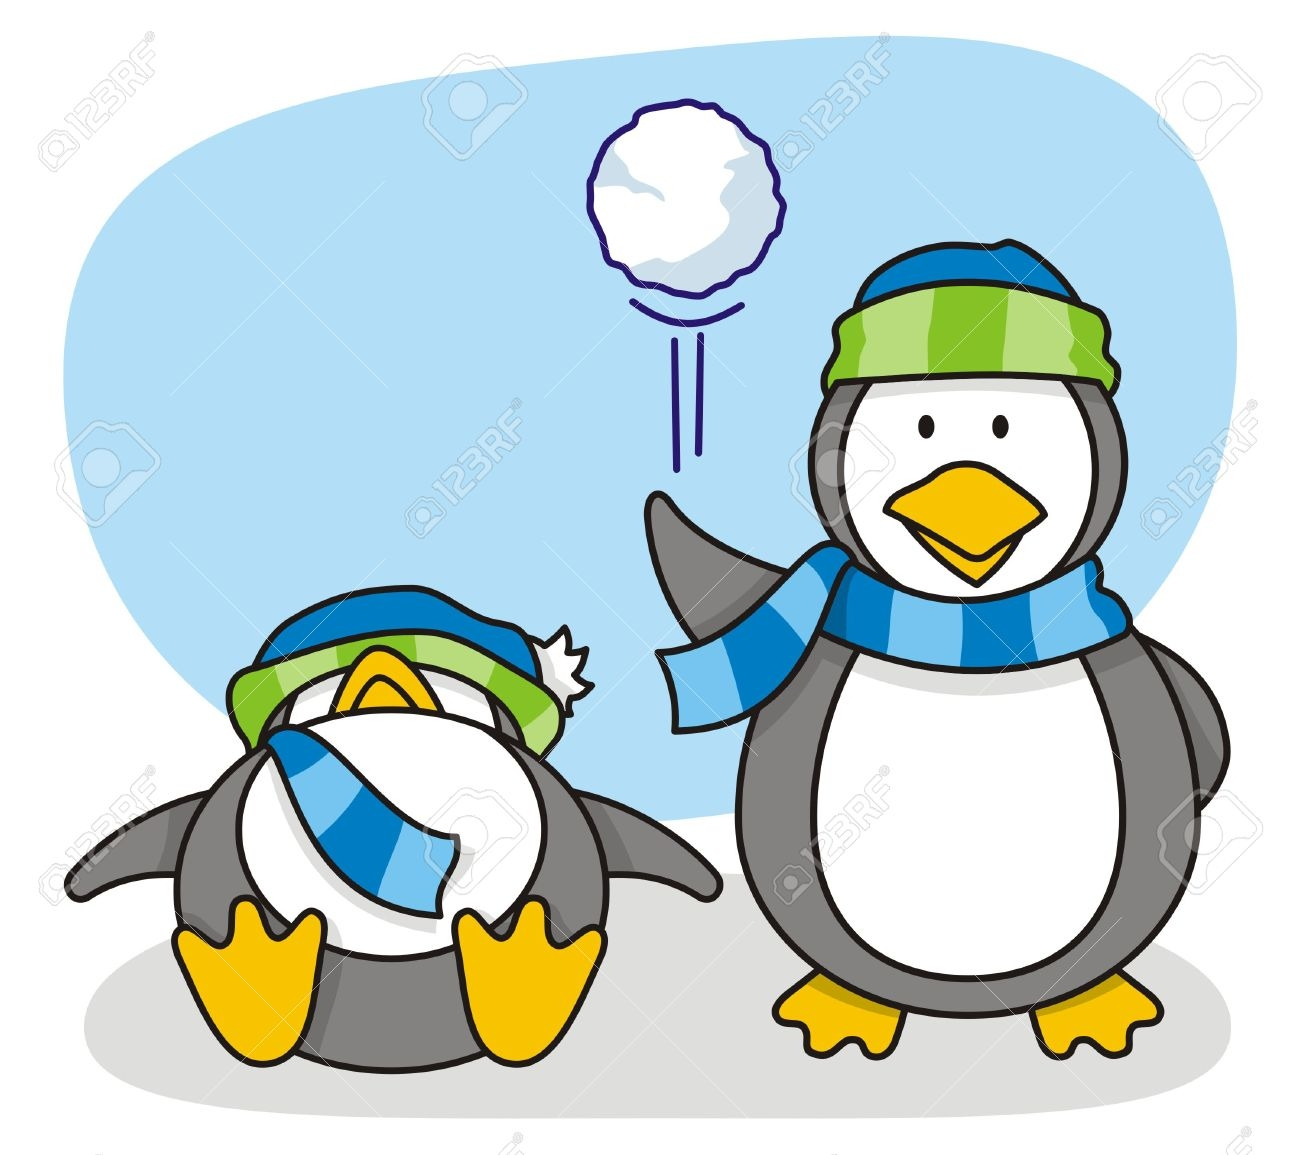 Unique gallery digital collection. Snowball clipart